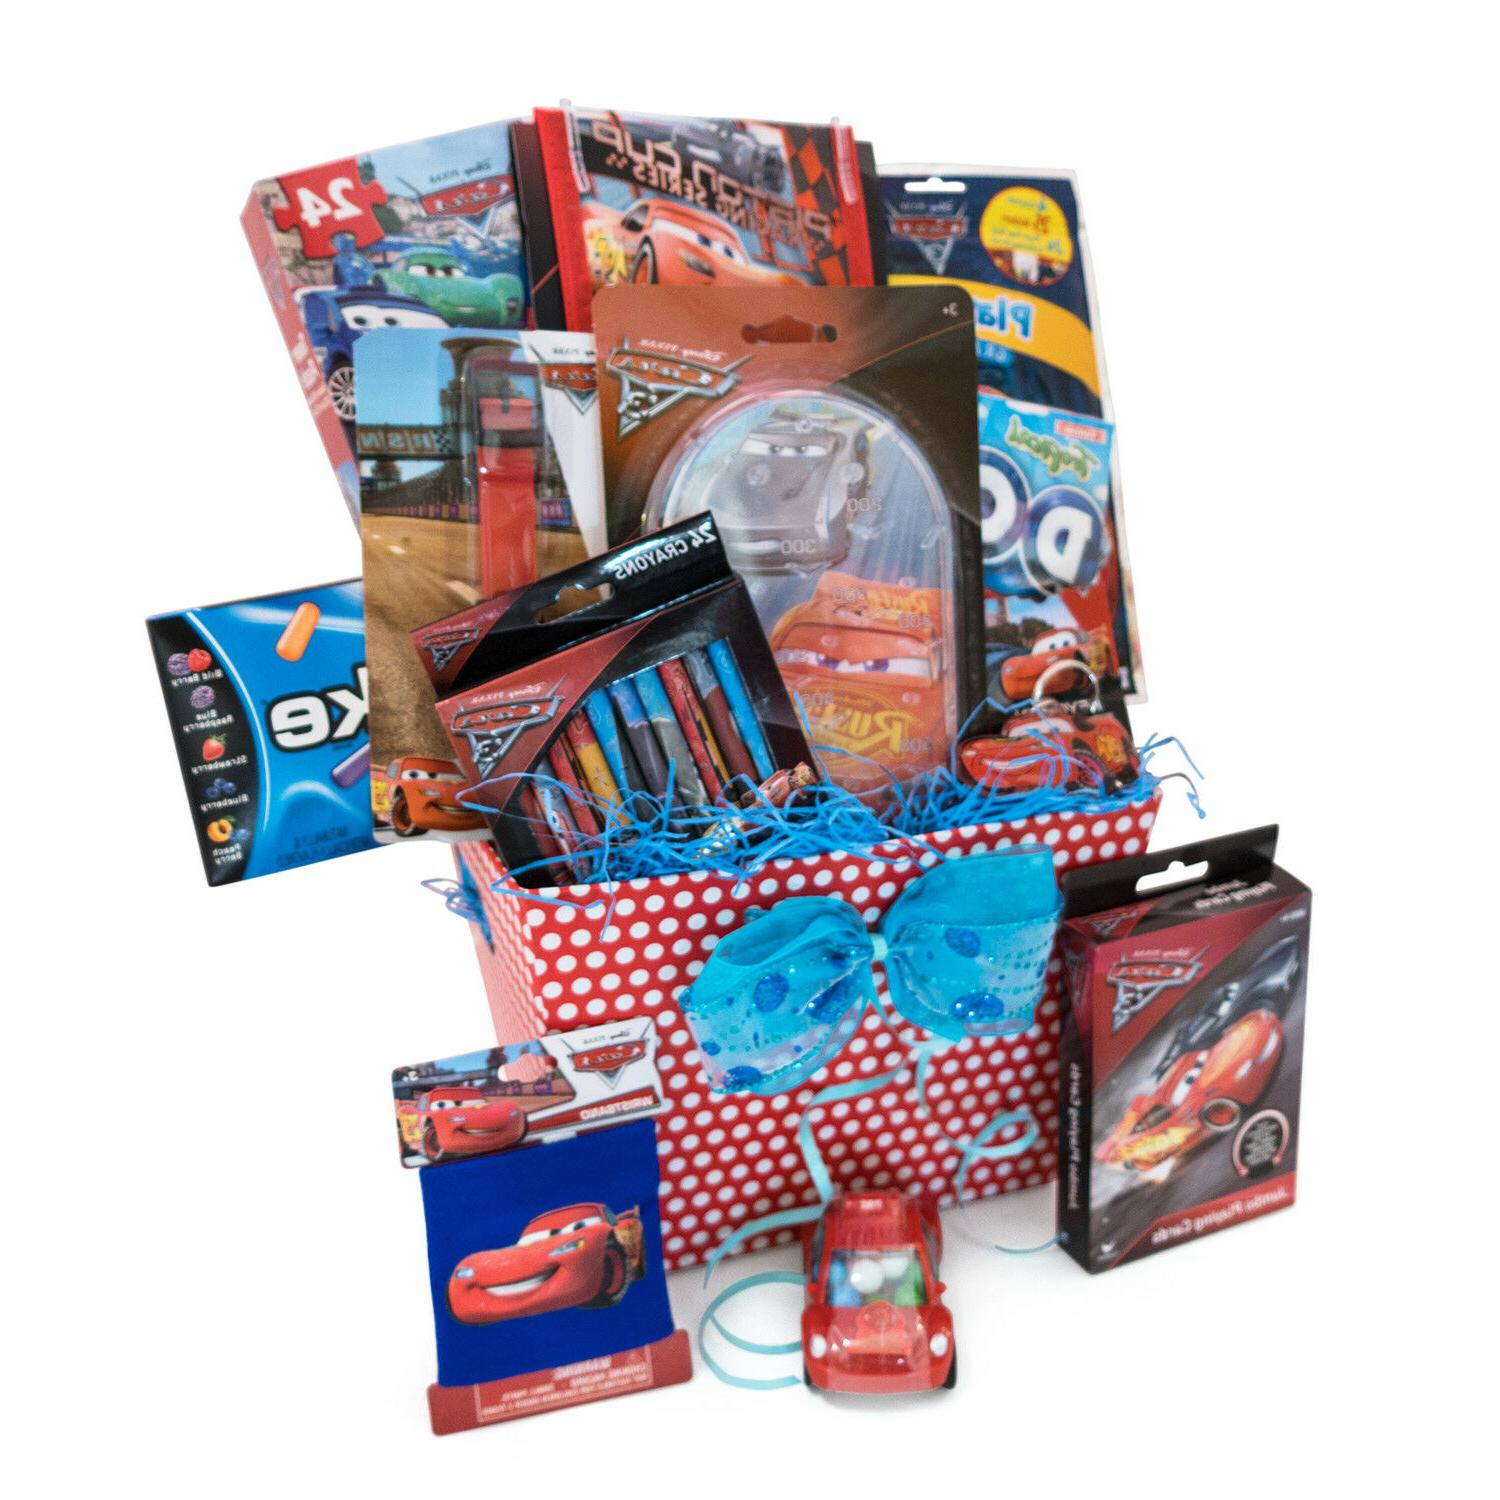 Gift Baskets For Kids Spiderman & Games Accessory Toys,